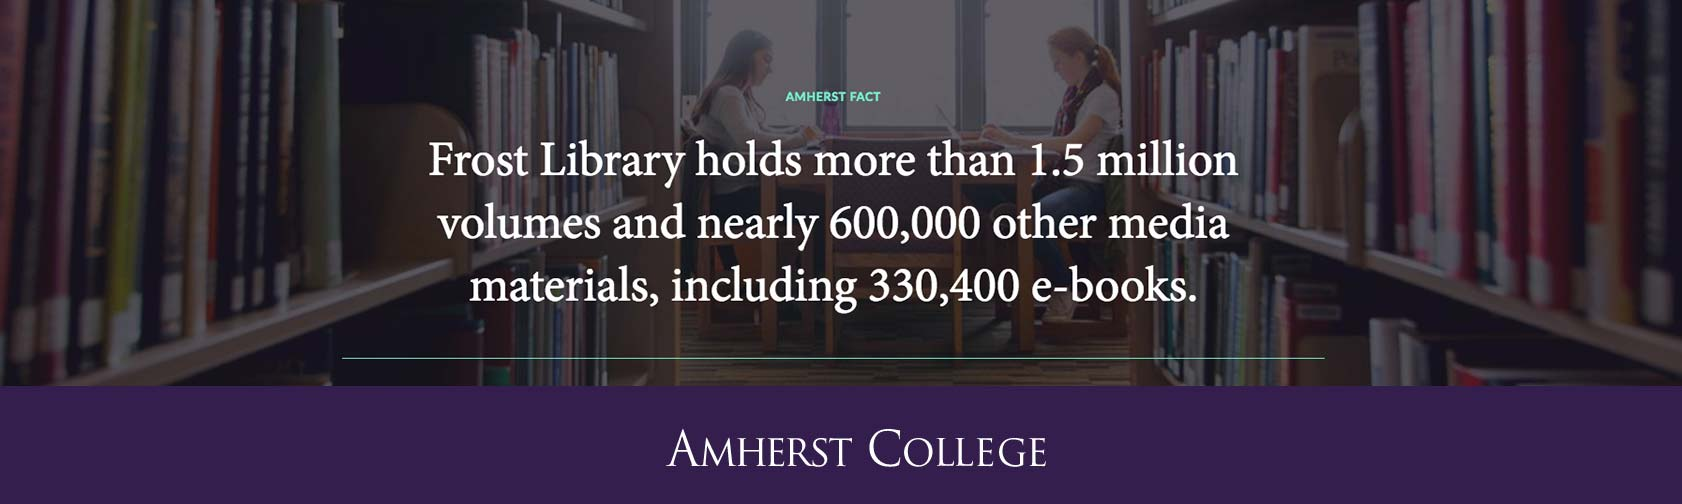 Frost Library Collections Fact